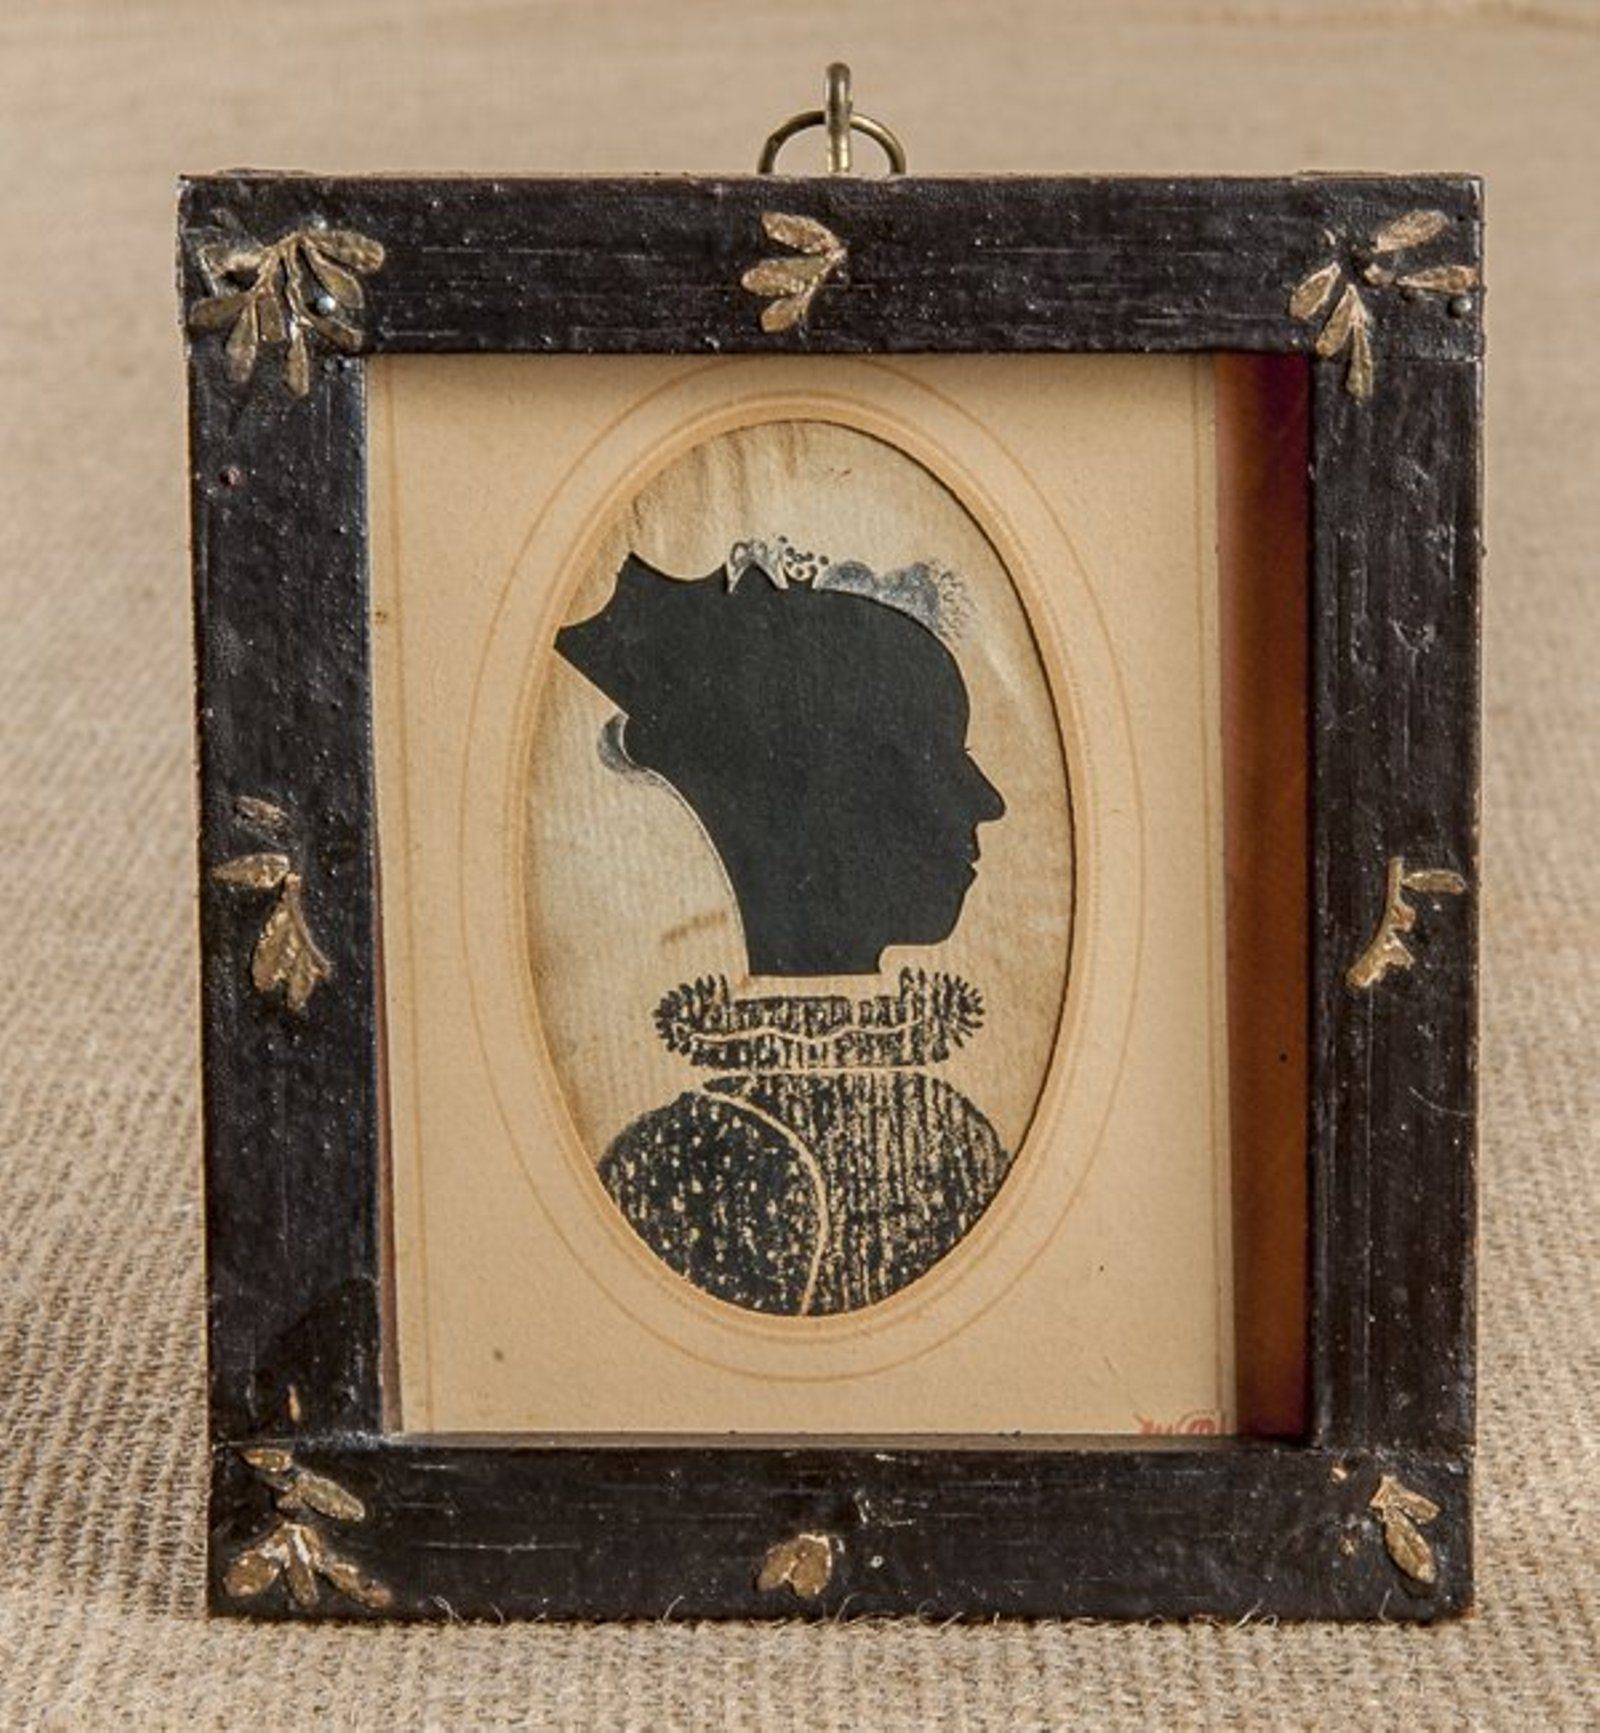 Hollowcut and stenciled silhouette of Augustia Wallace, Holland, Massachusetts, retaining an early decorated frame, 3 1/8'' x 2''. CONDITION Pencil inscription verso identifies sitter. Moderate staining. Provenance: The Collection of Glee Krueger, Needlework Scholar.